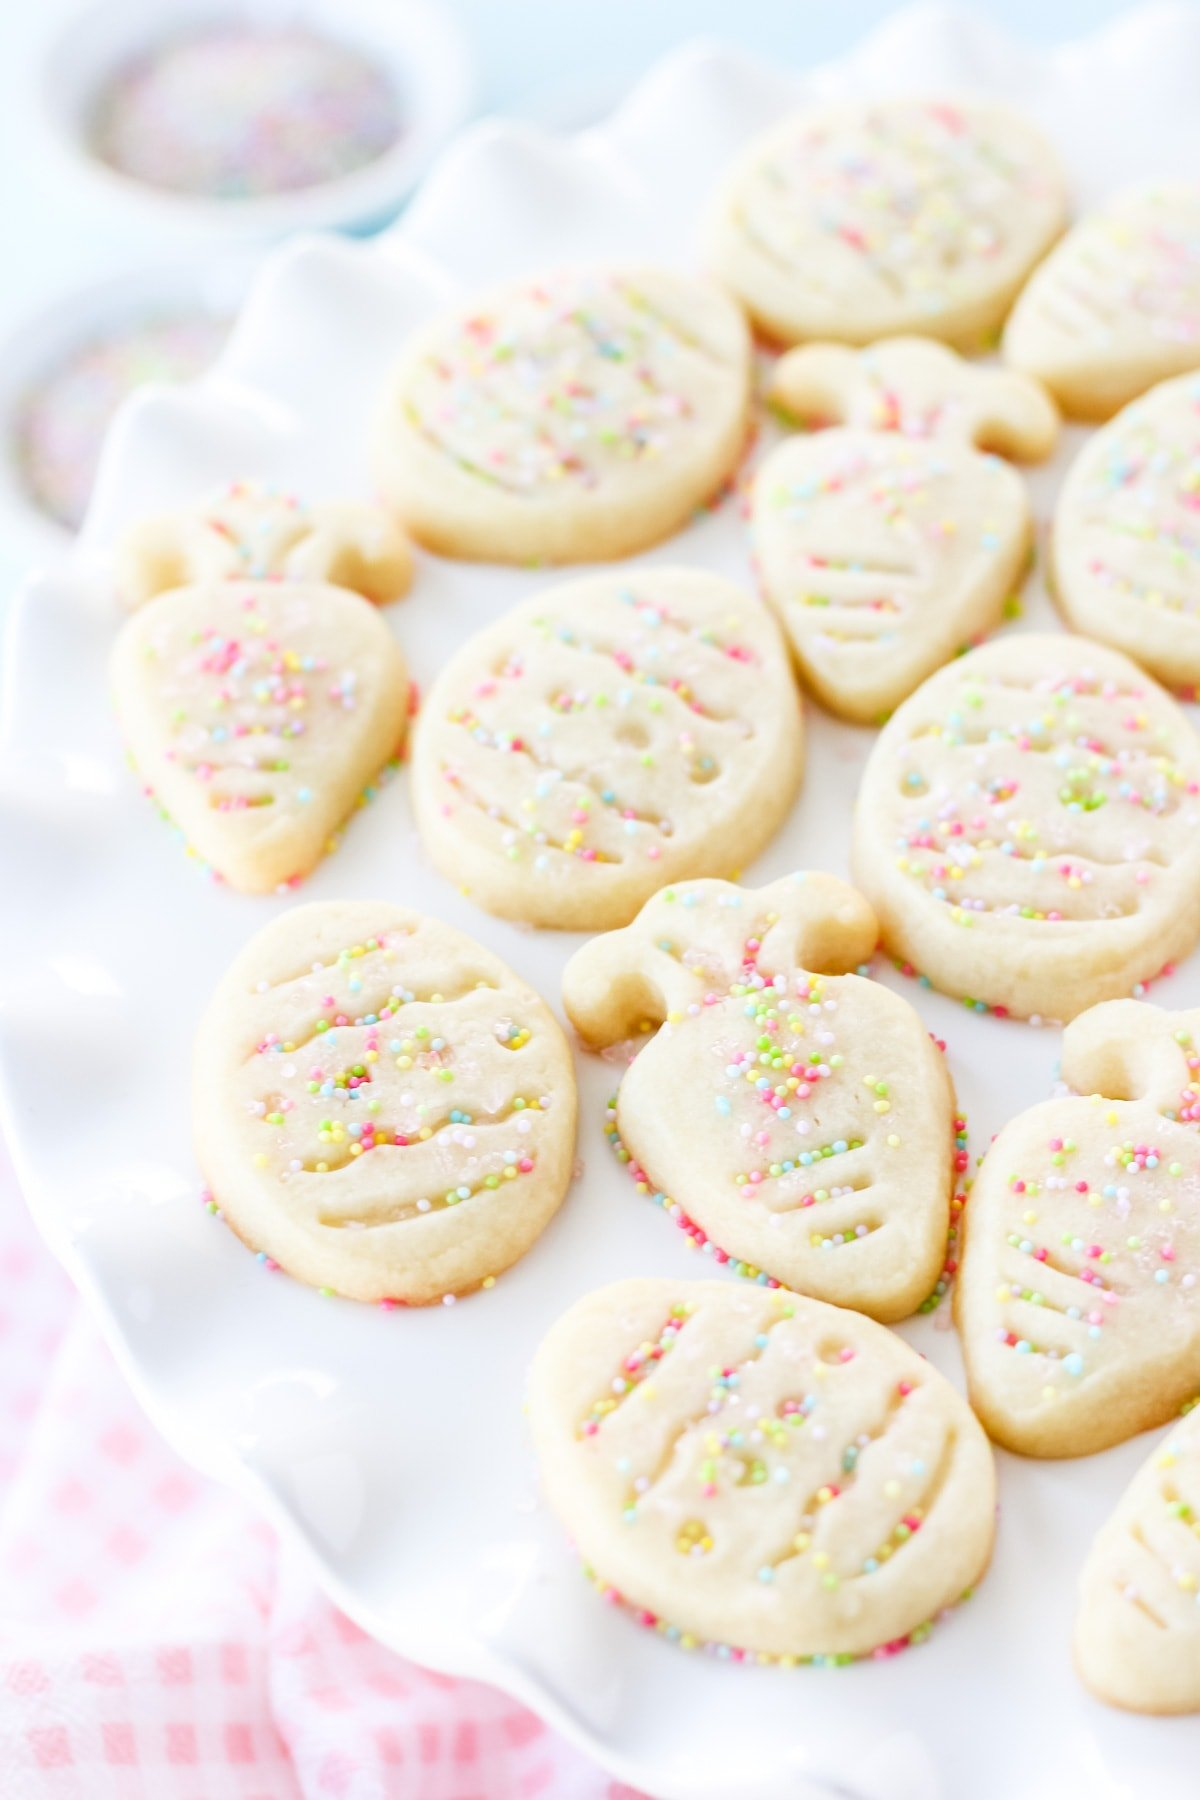 a close up image of a white cake plate full of shortbread cut out cookies in the shapes of Easter eggs and carrots. in the background are small bowls of pastel colour sprinkles and a pink checked napkin